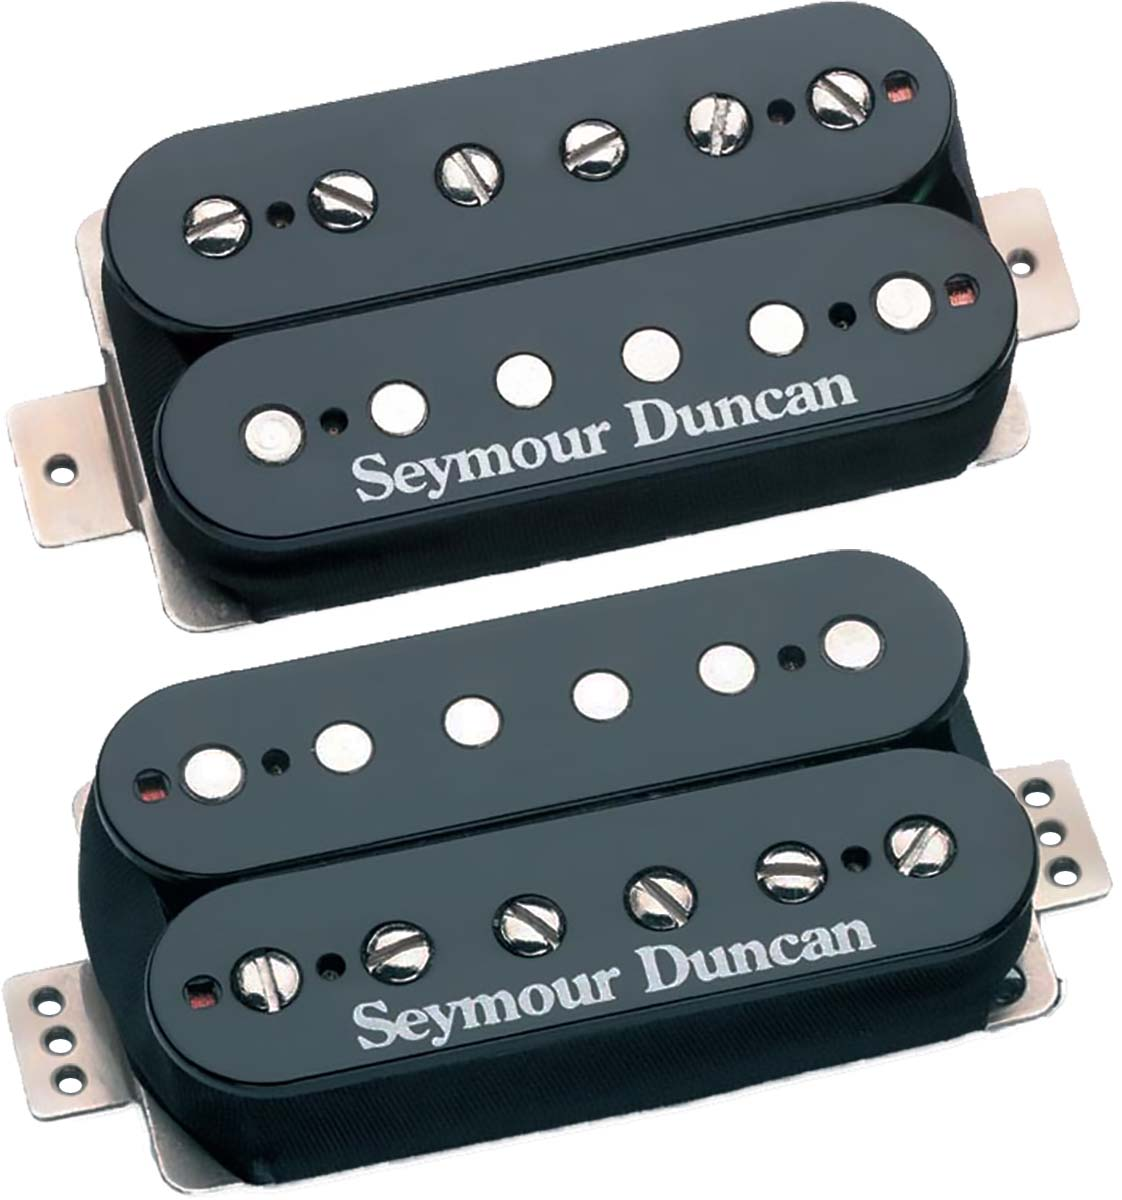 Seymour Duncan F-Spaced Hot Rodded Humbucker Set: SH-2n + TB-4 JB Bridge, Black